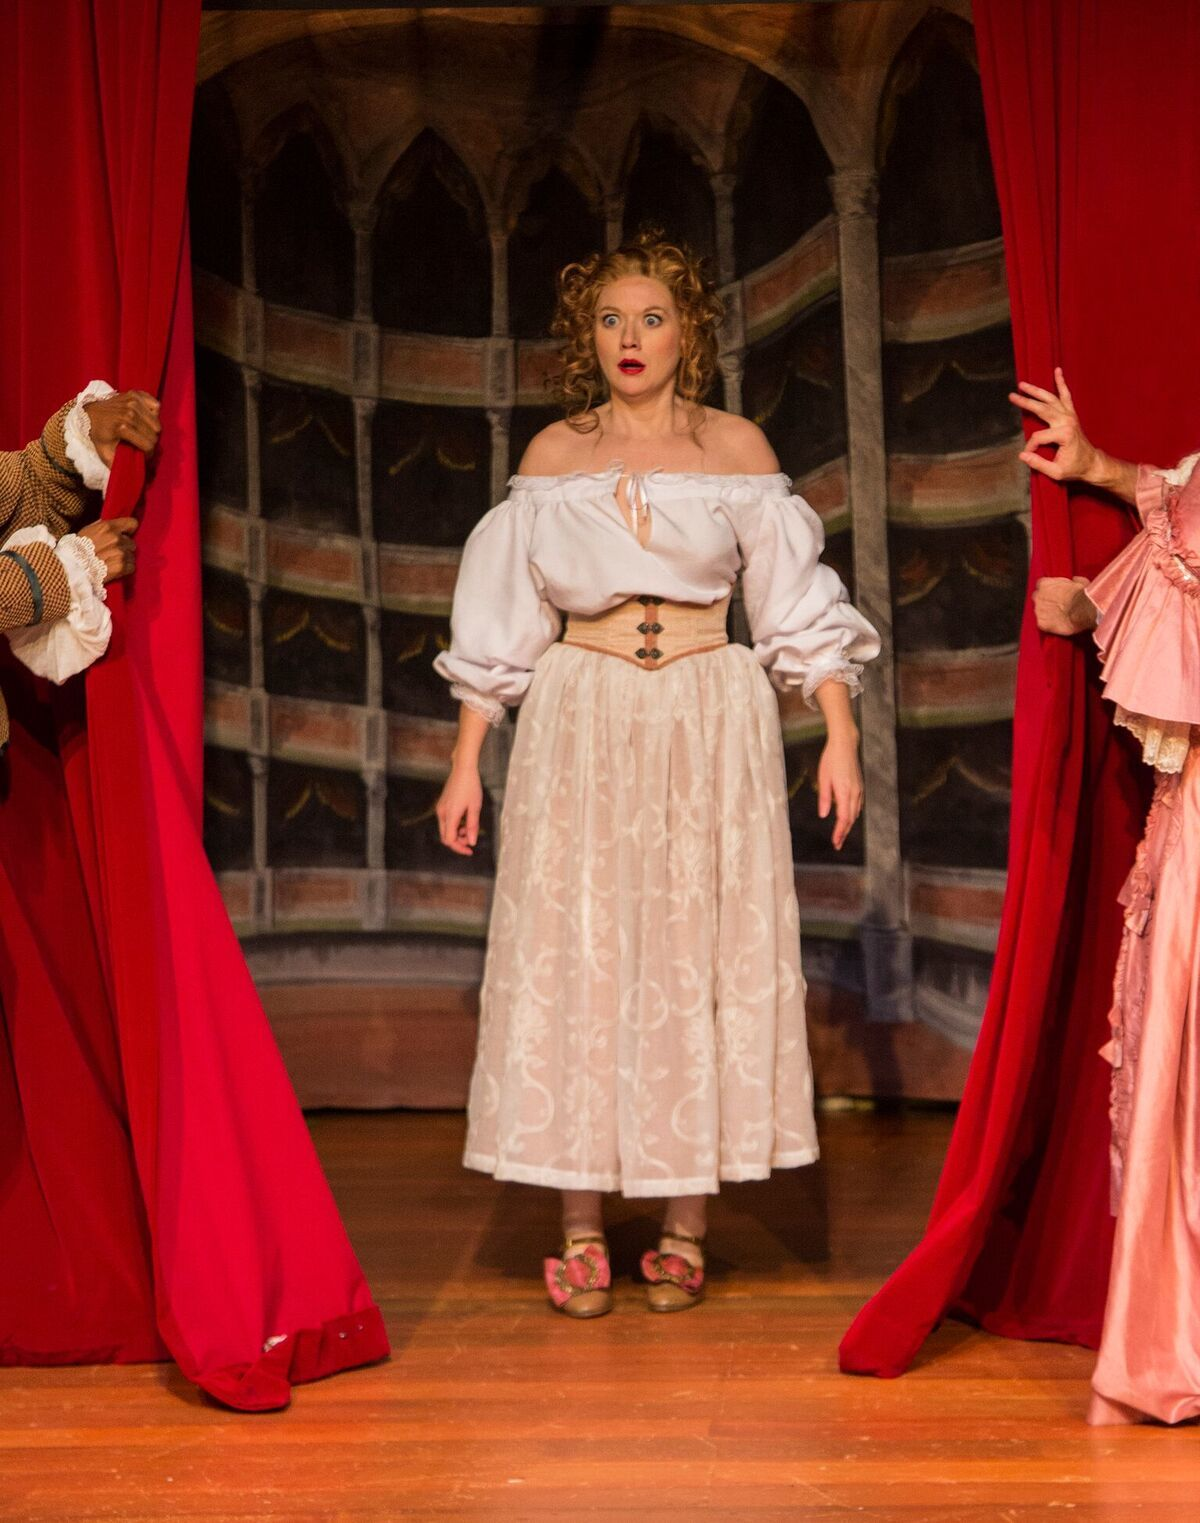 BWW Review: NELL GWYNN shows 17th Century humor and heart at Synchronicty Theatre